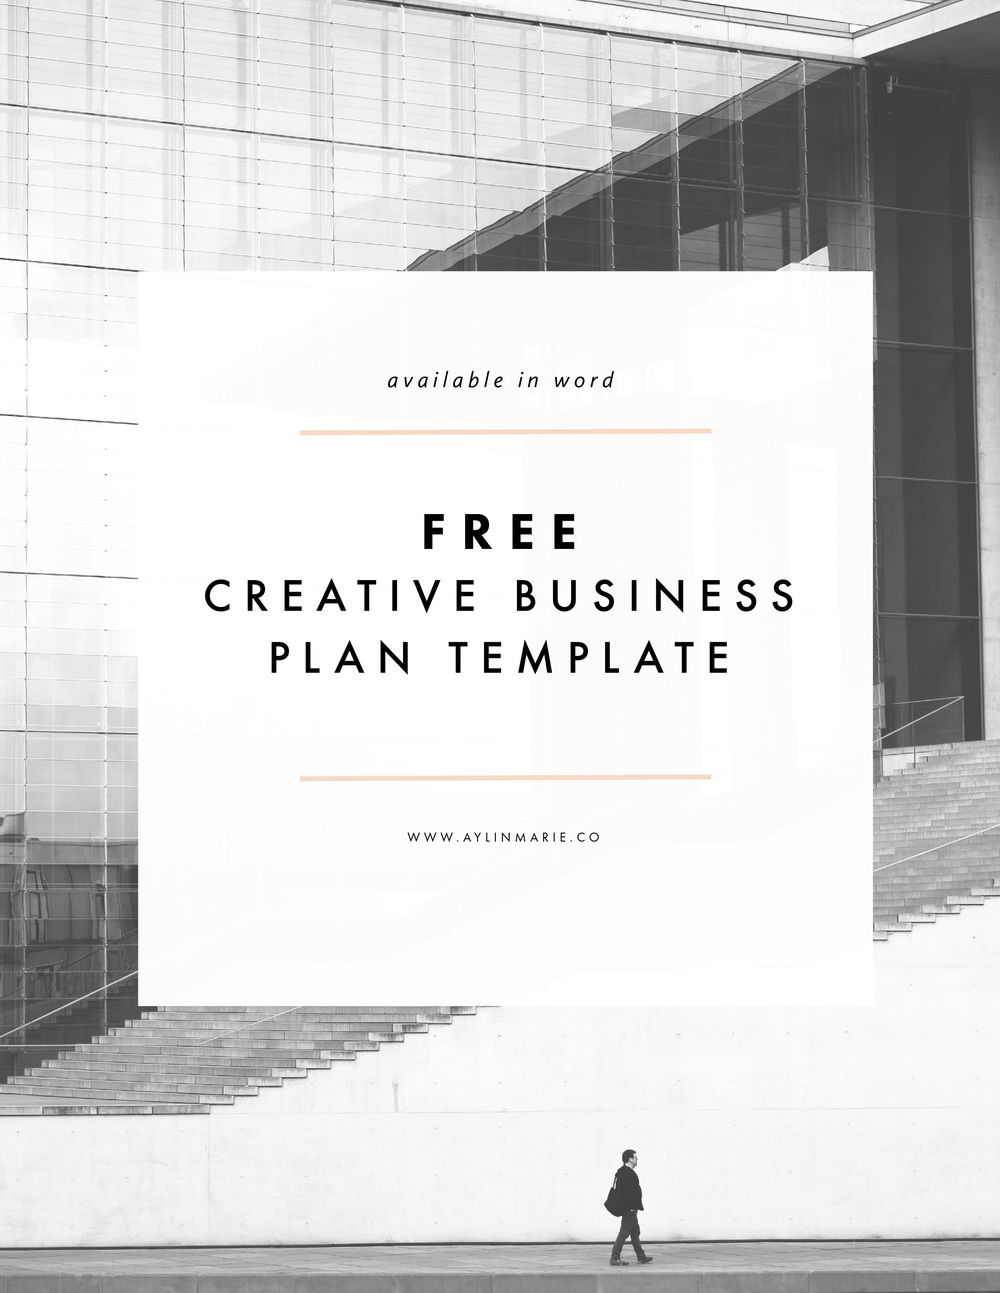 Freebie creative business plan template aylin marie freebie creative business plan template accmission